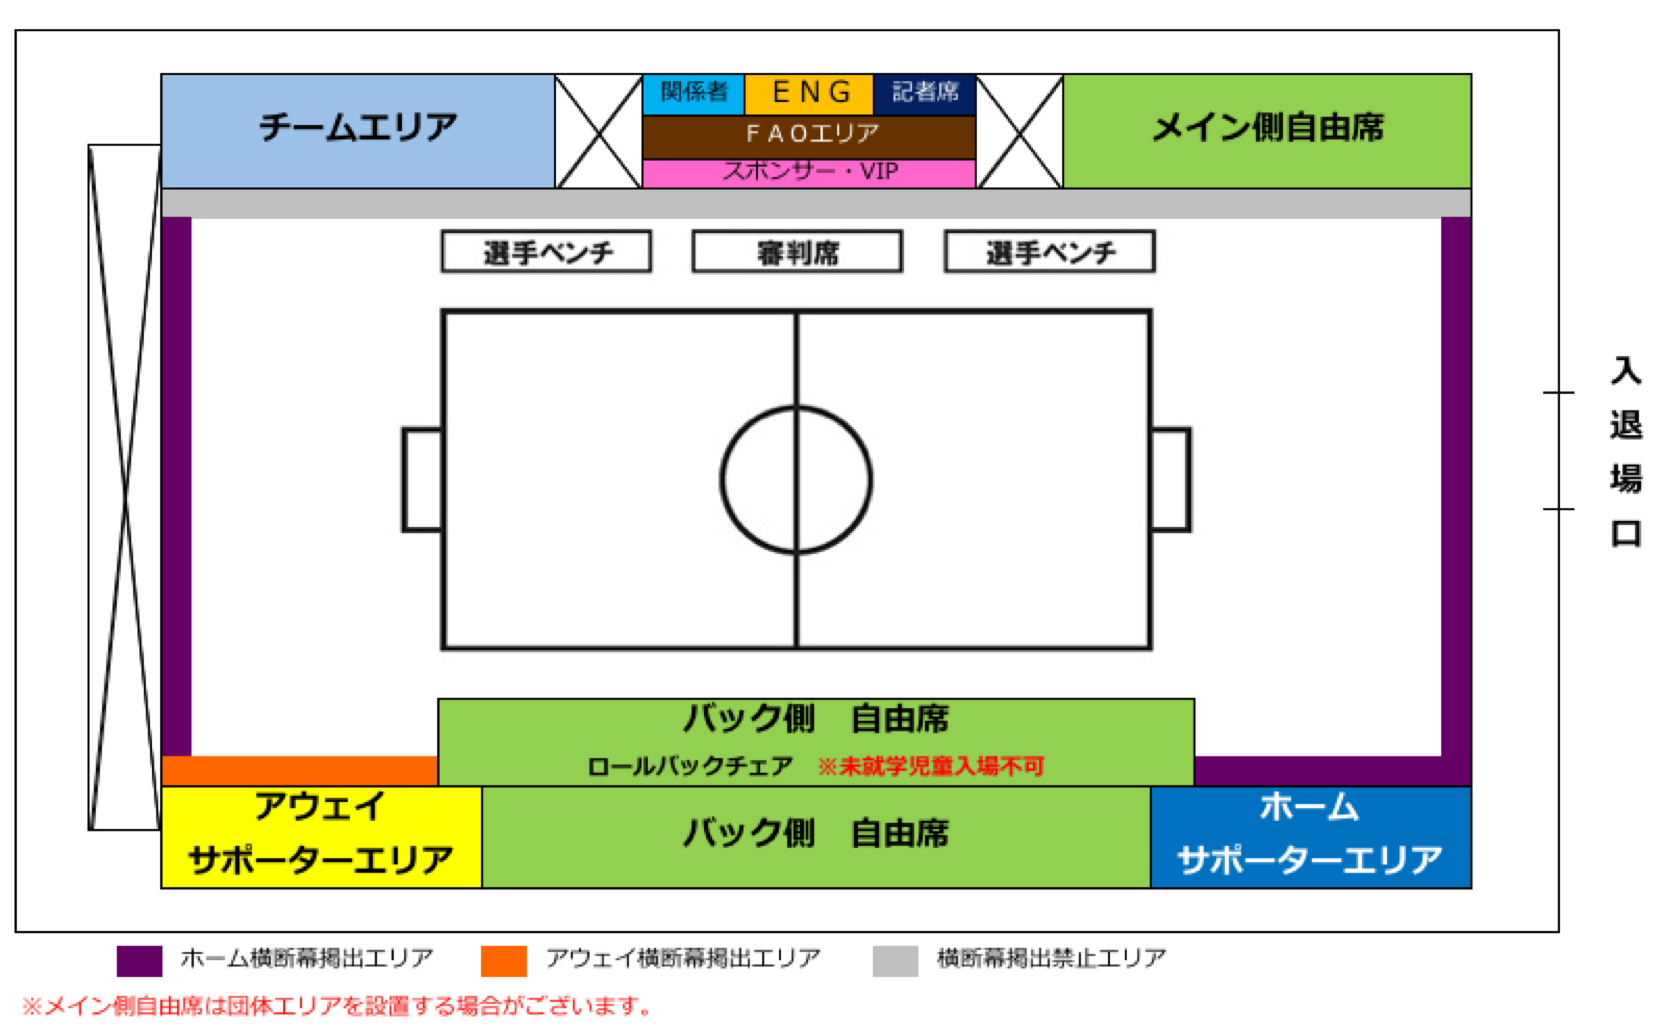 http://www.bellmare.or.jp/futsal/news/photo/fs190108_01_01.png